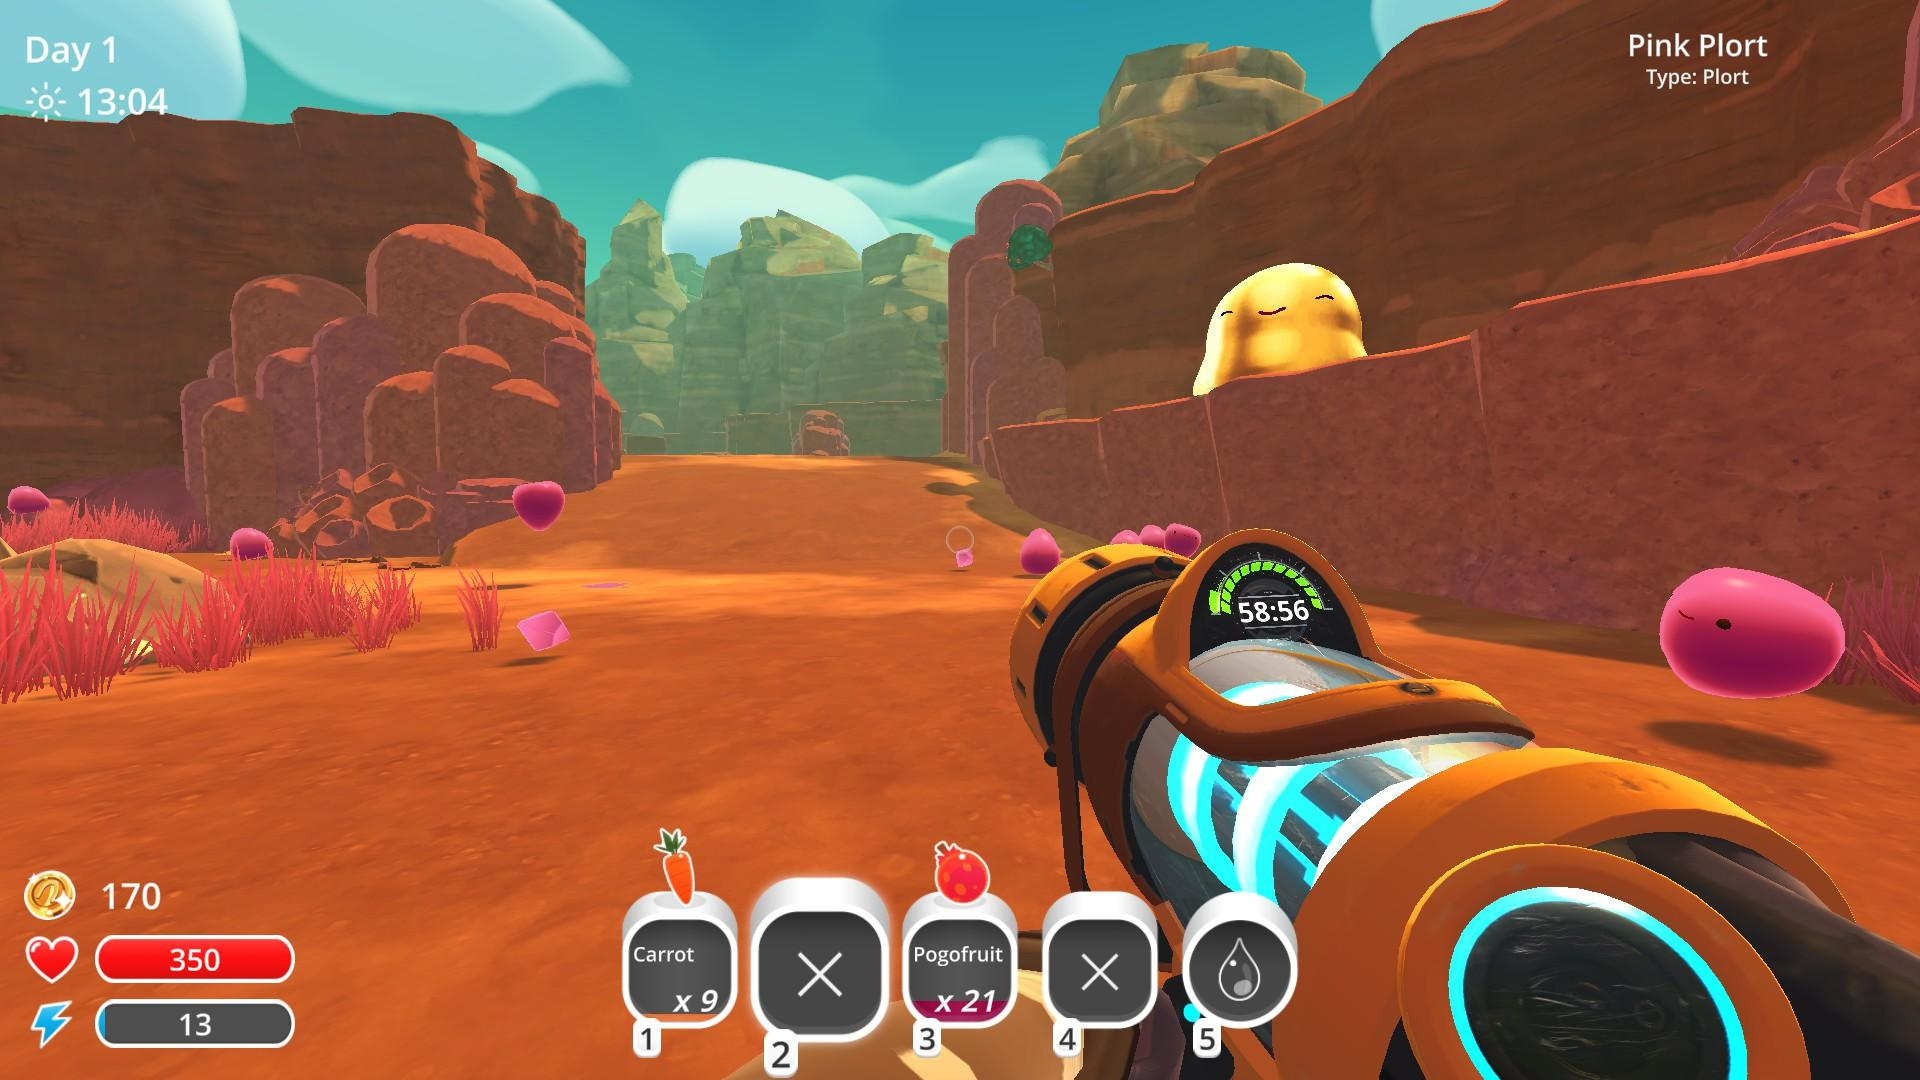 Slime Rancher - Detailed Guide to Rush Mode and Achieving